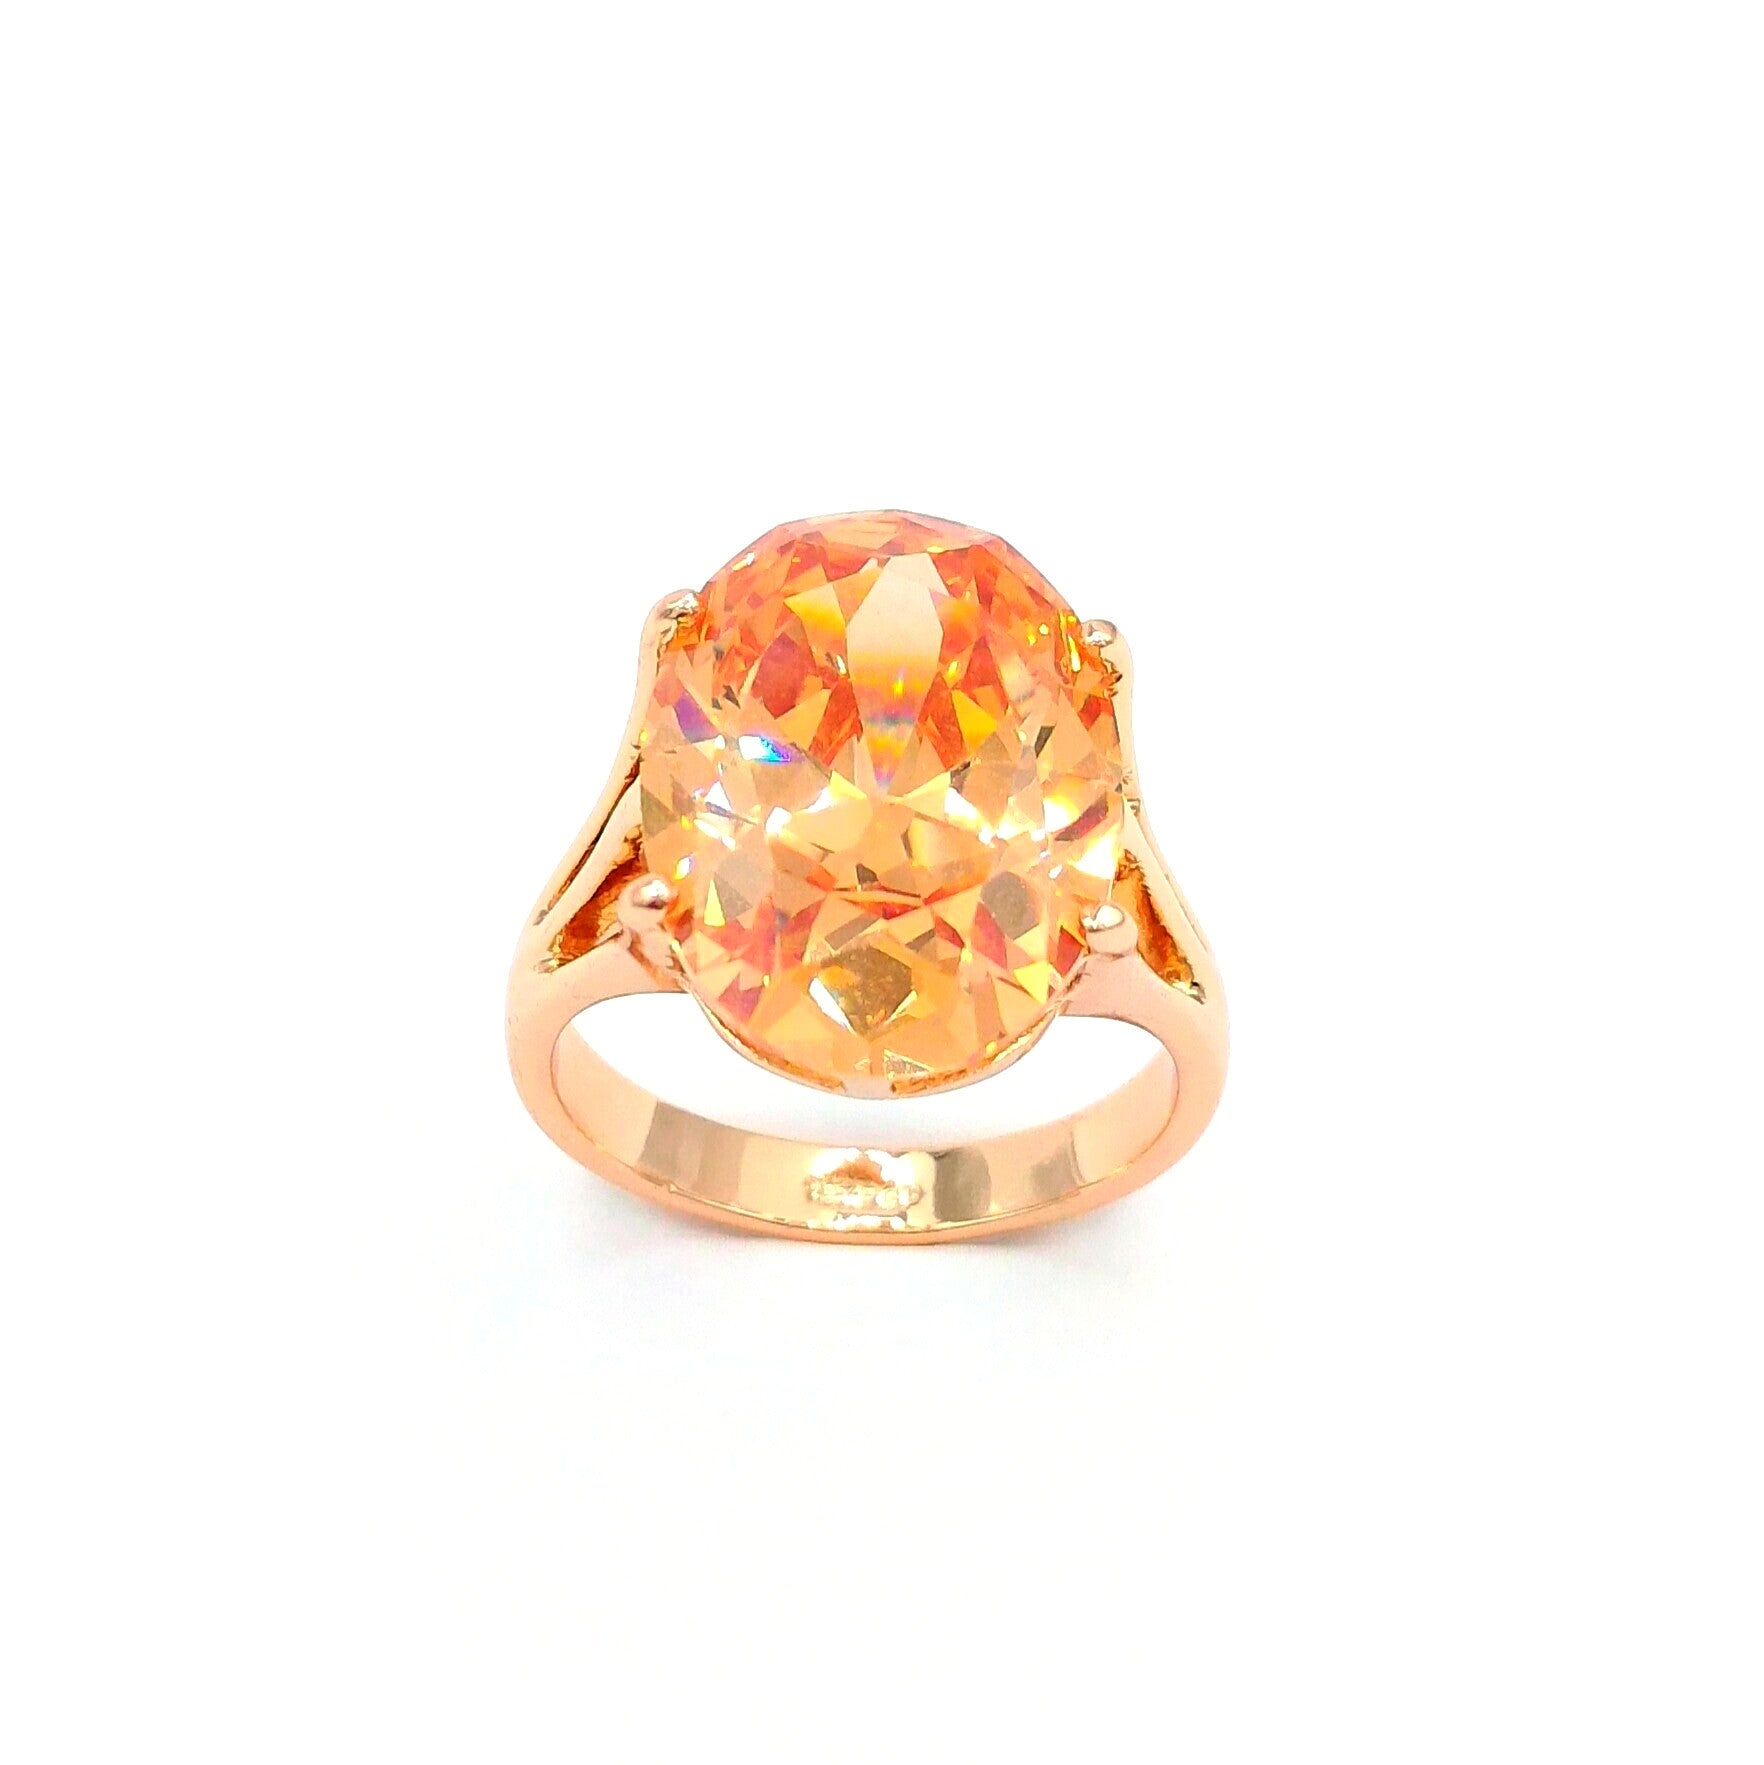 foil products ring amber cut gold engagement diamond antique rings backed georgian rose flower